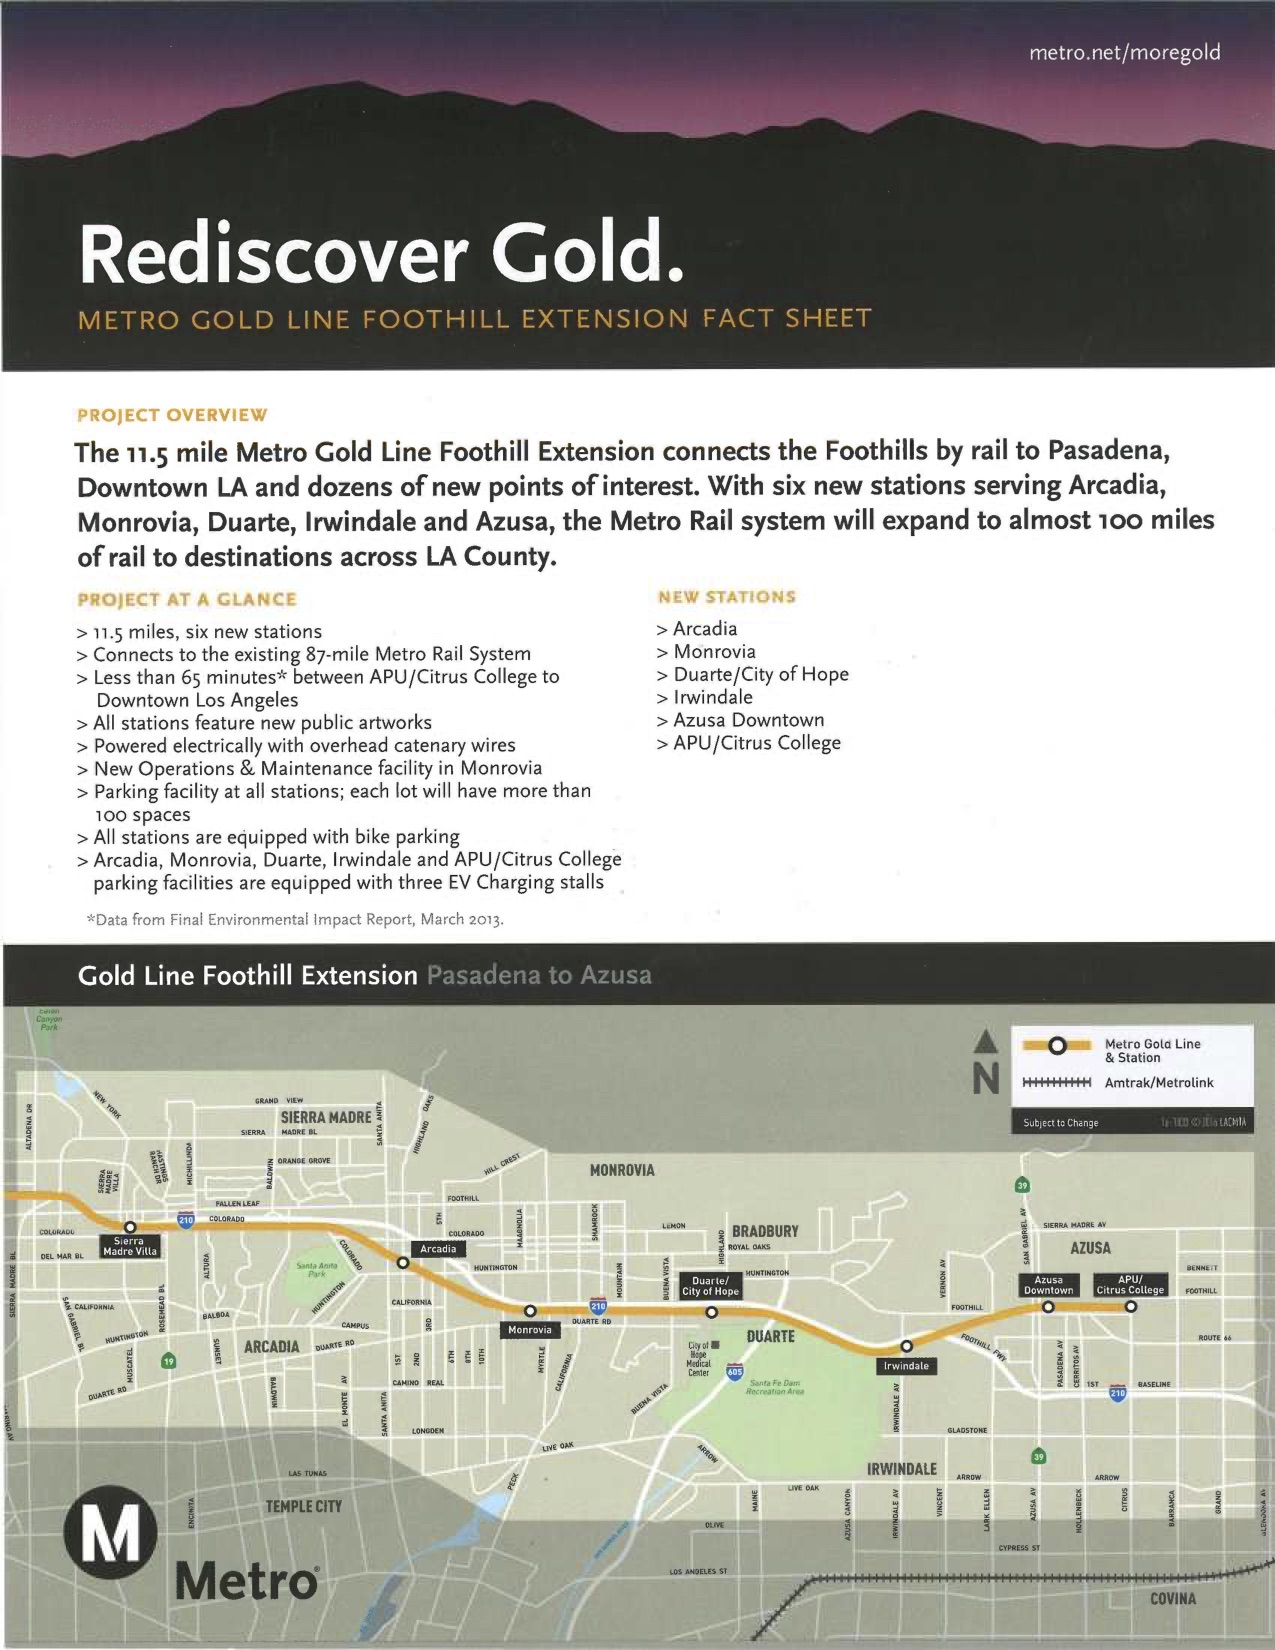 Rediscover Gold Fact Sheet